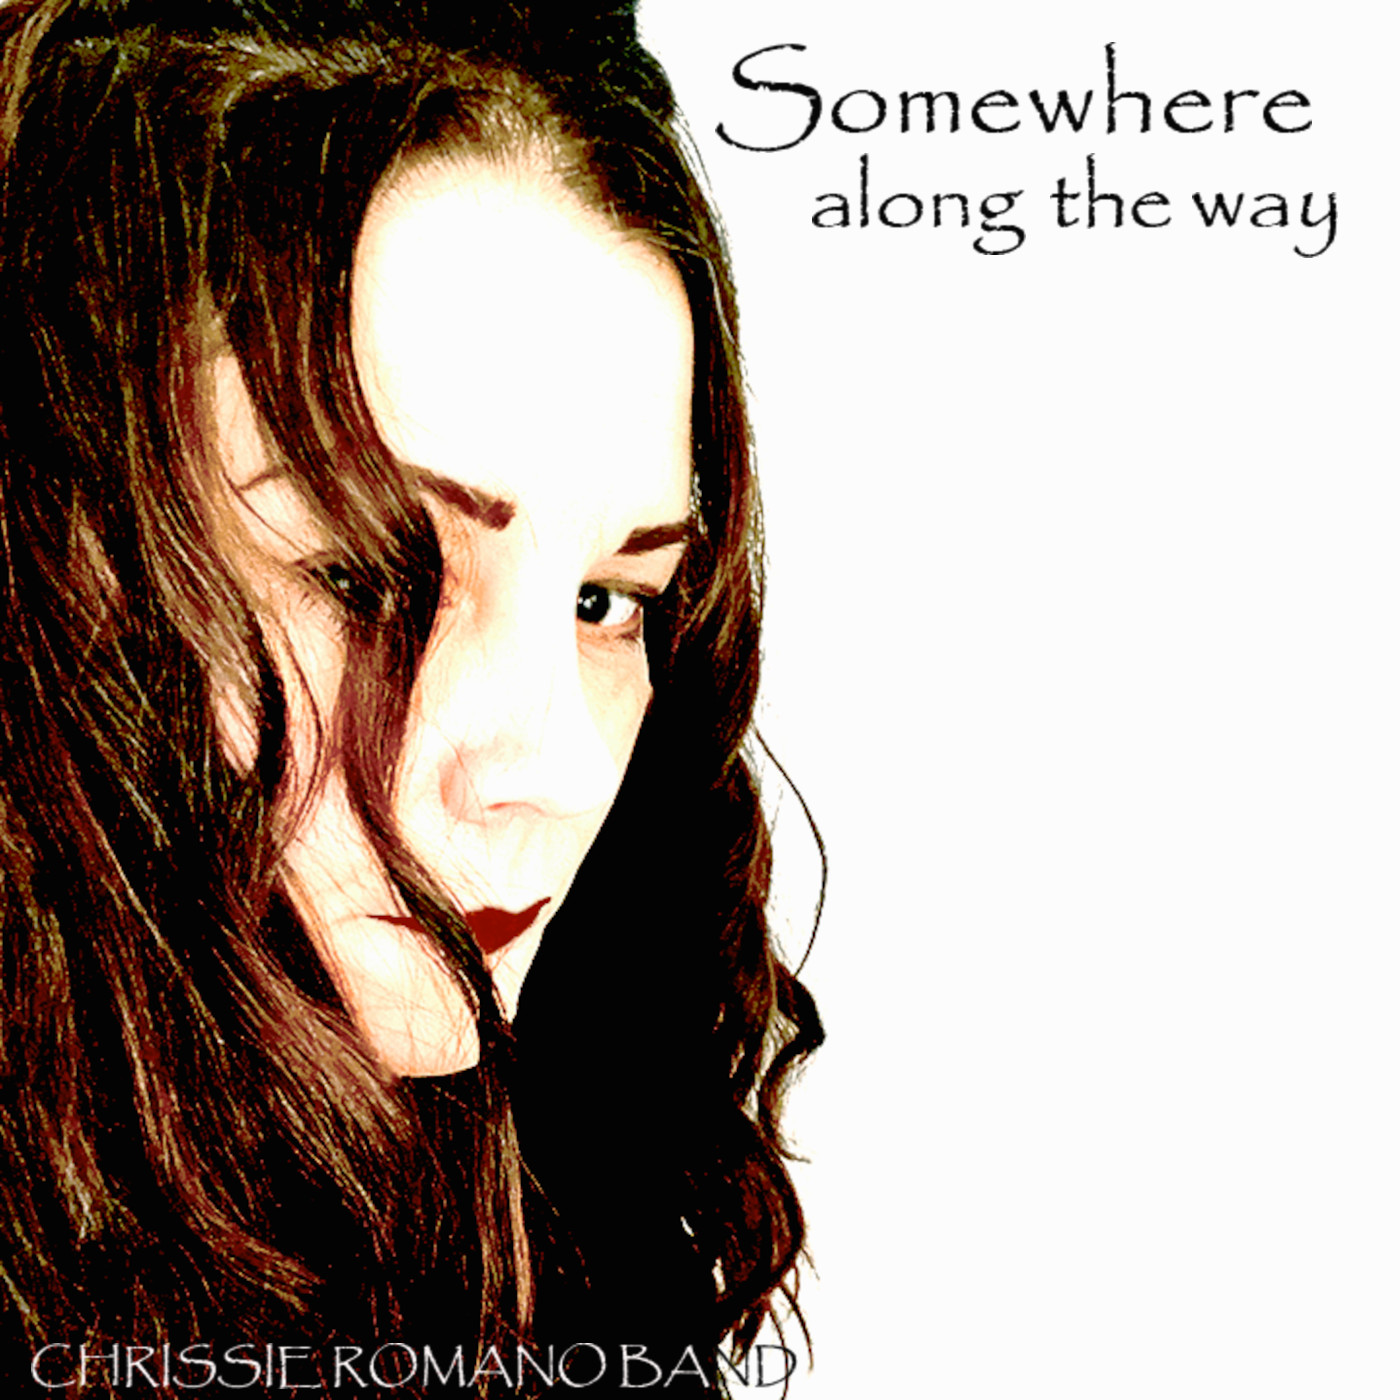 Chrissie Romano Band is All About Authentic Americana Music Fused with Sensational Pop